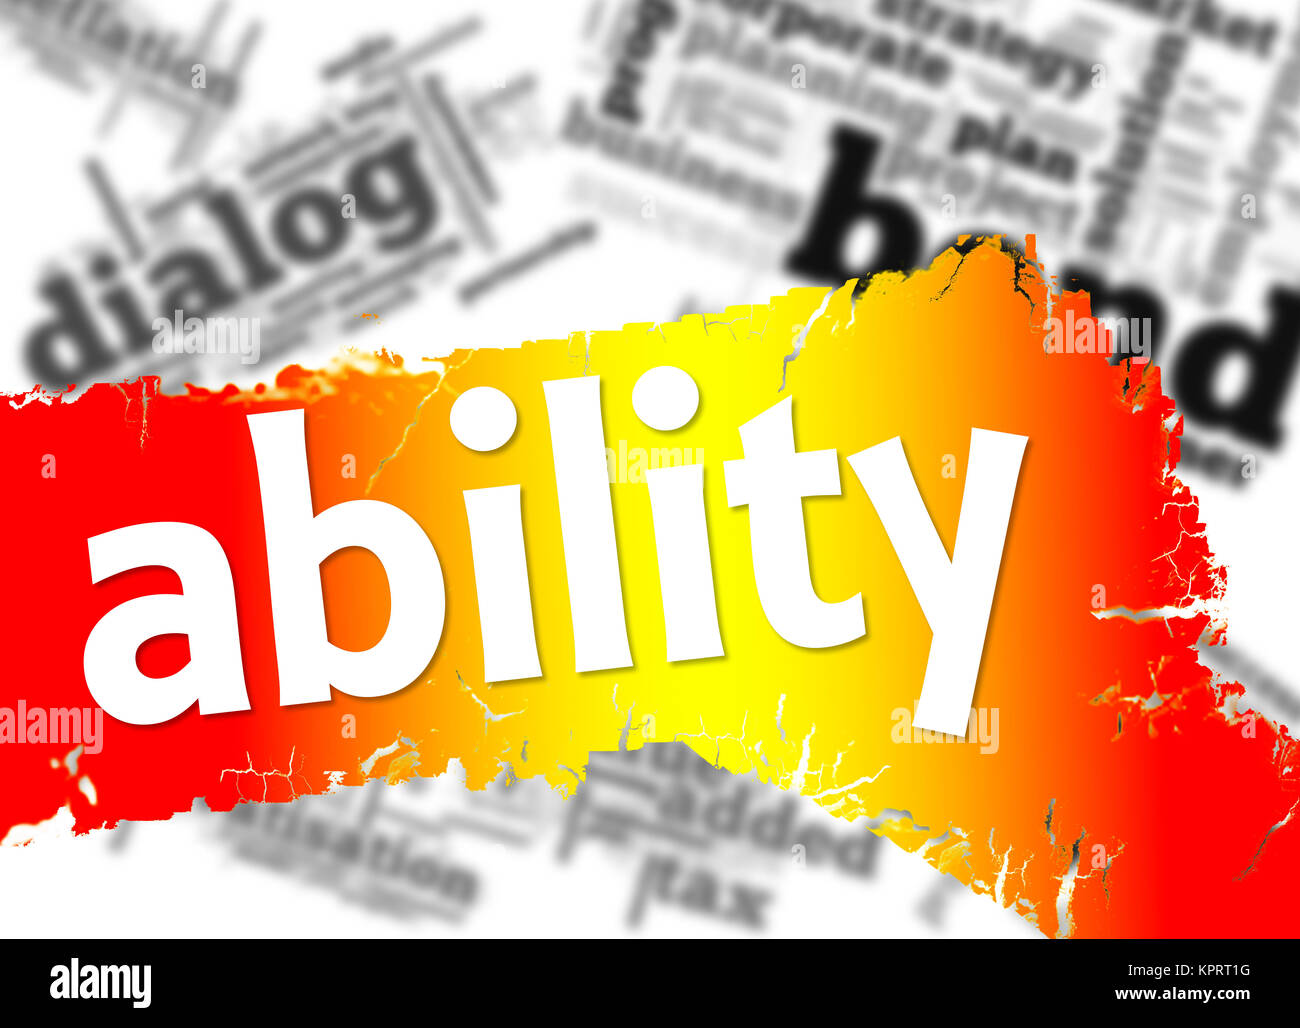 Word cloud with ability word - Stock Image